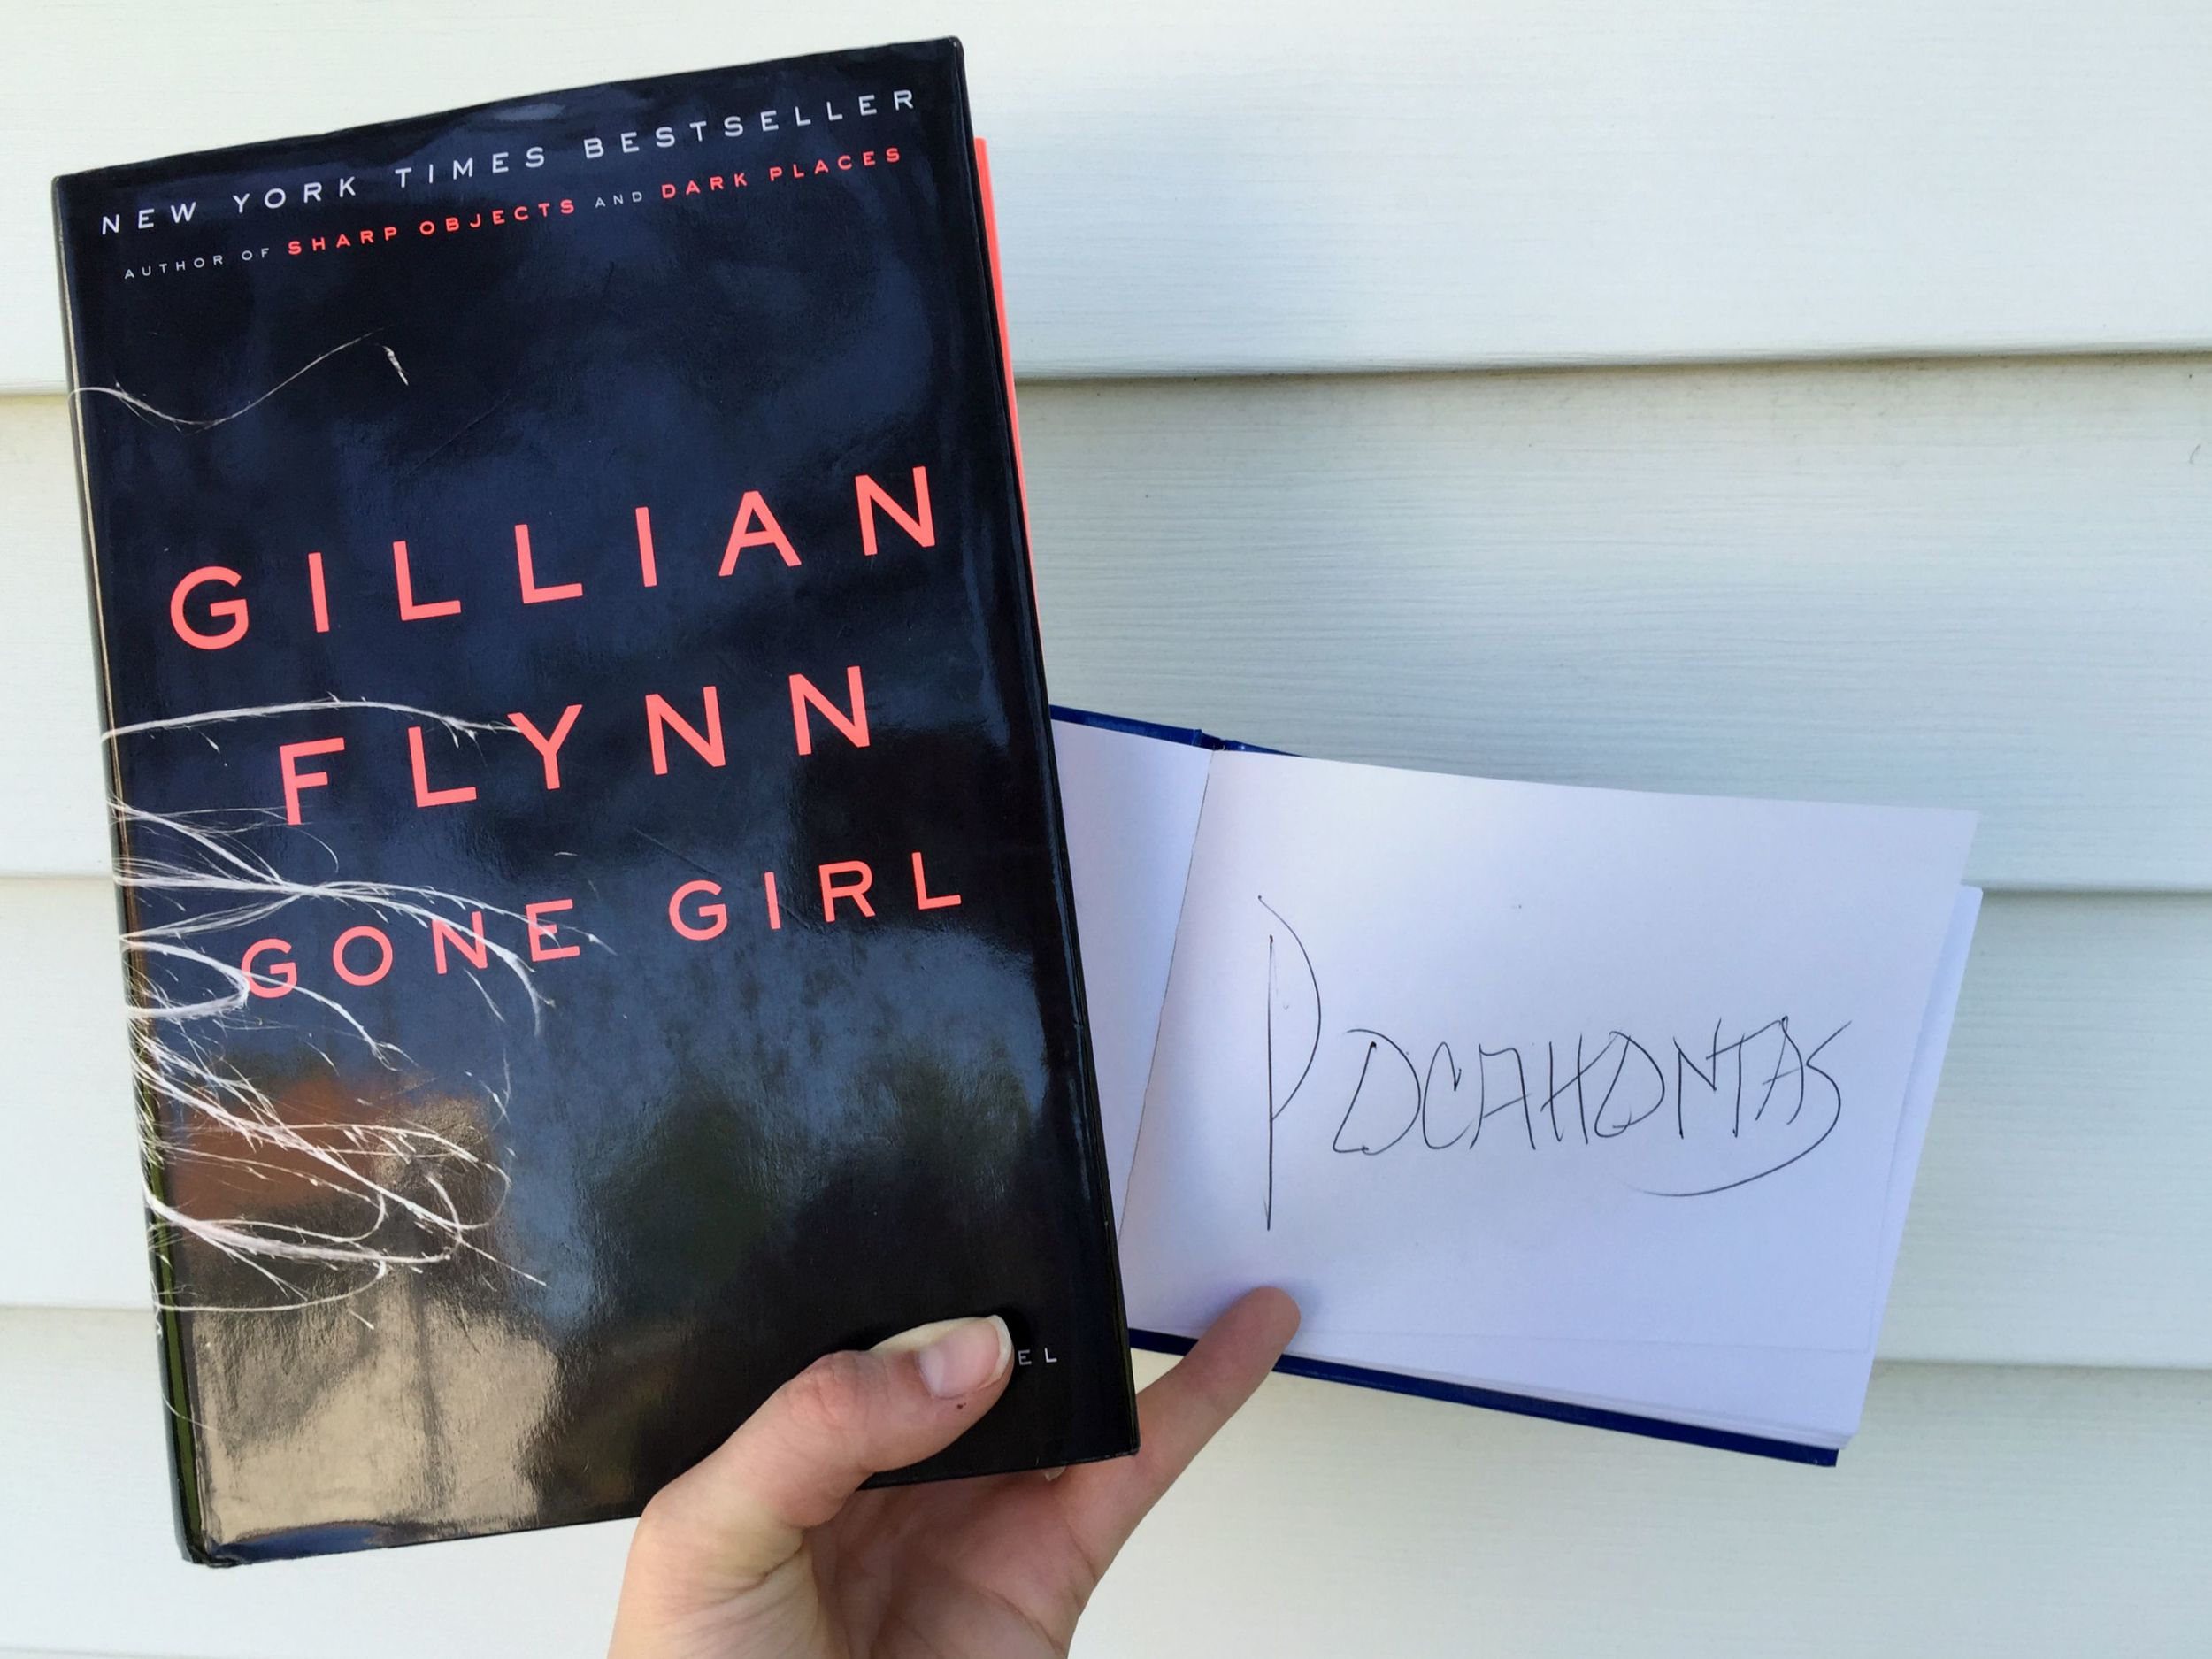 Gone Girl and Pocahontas